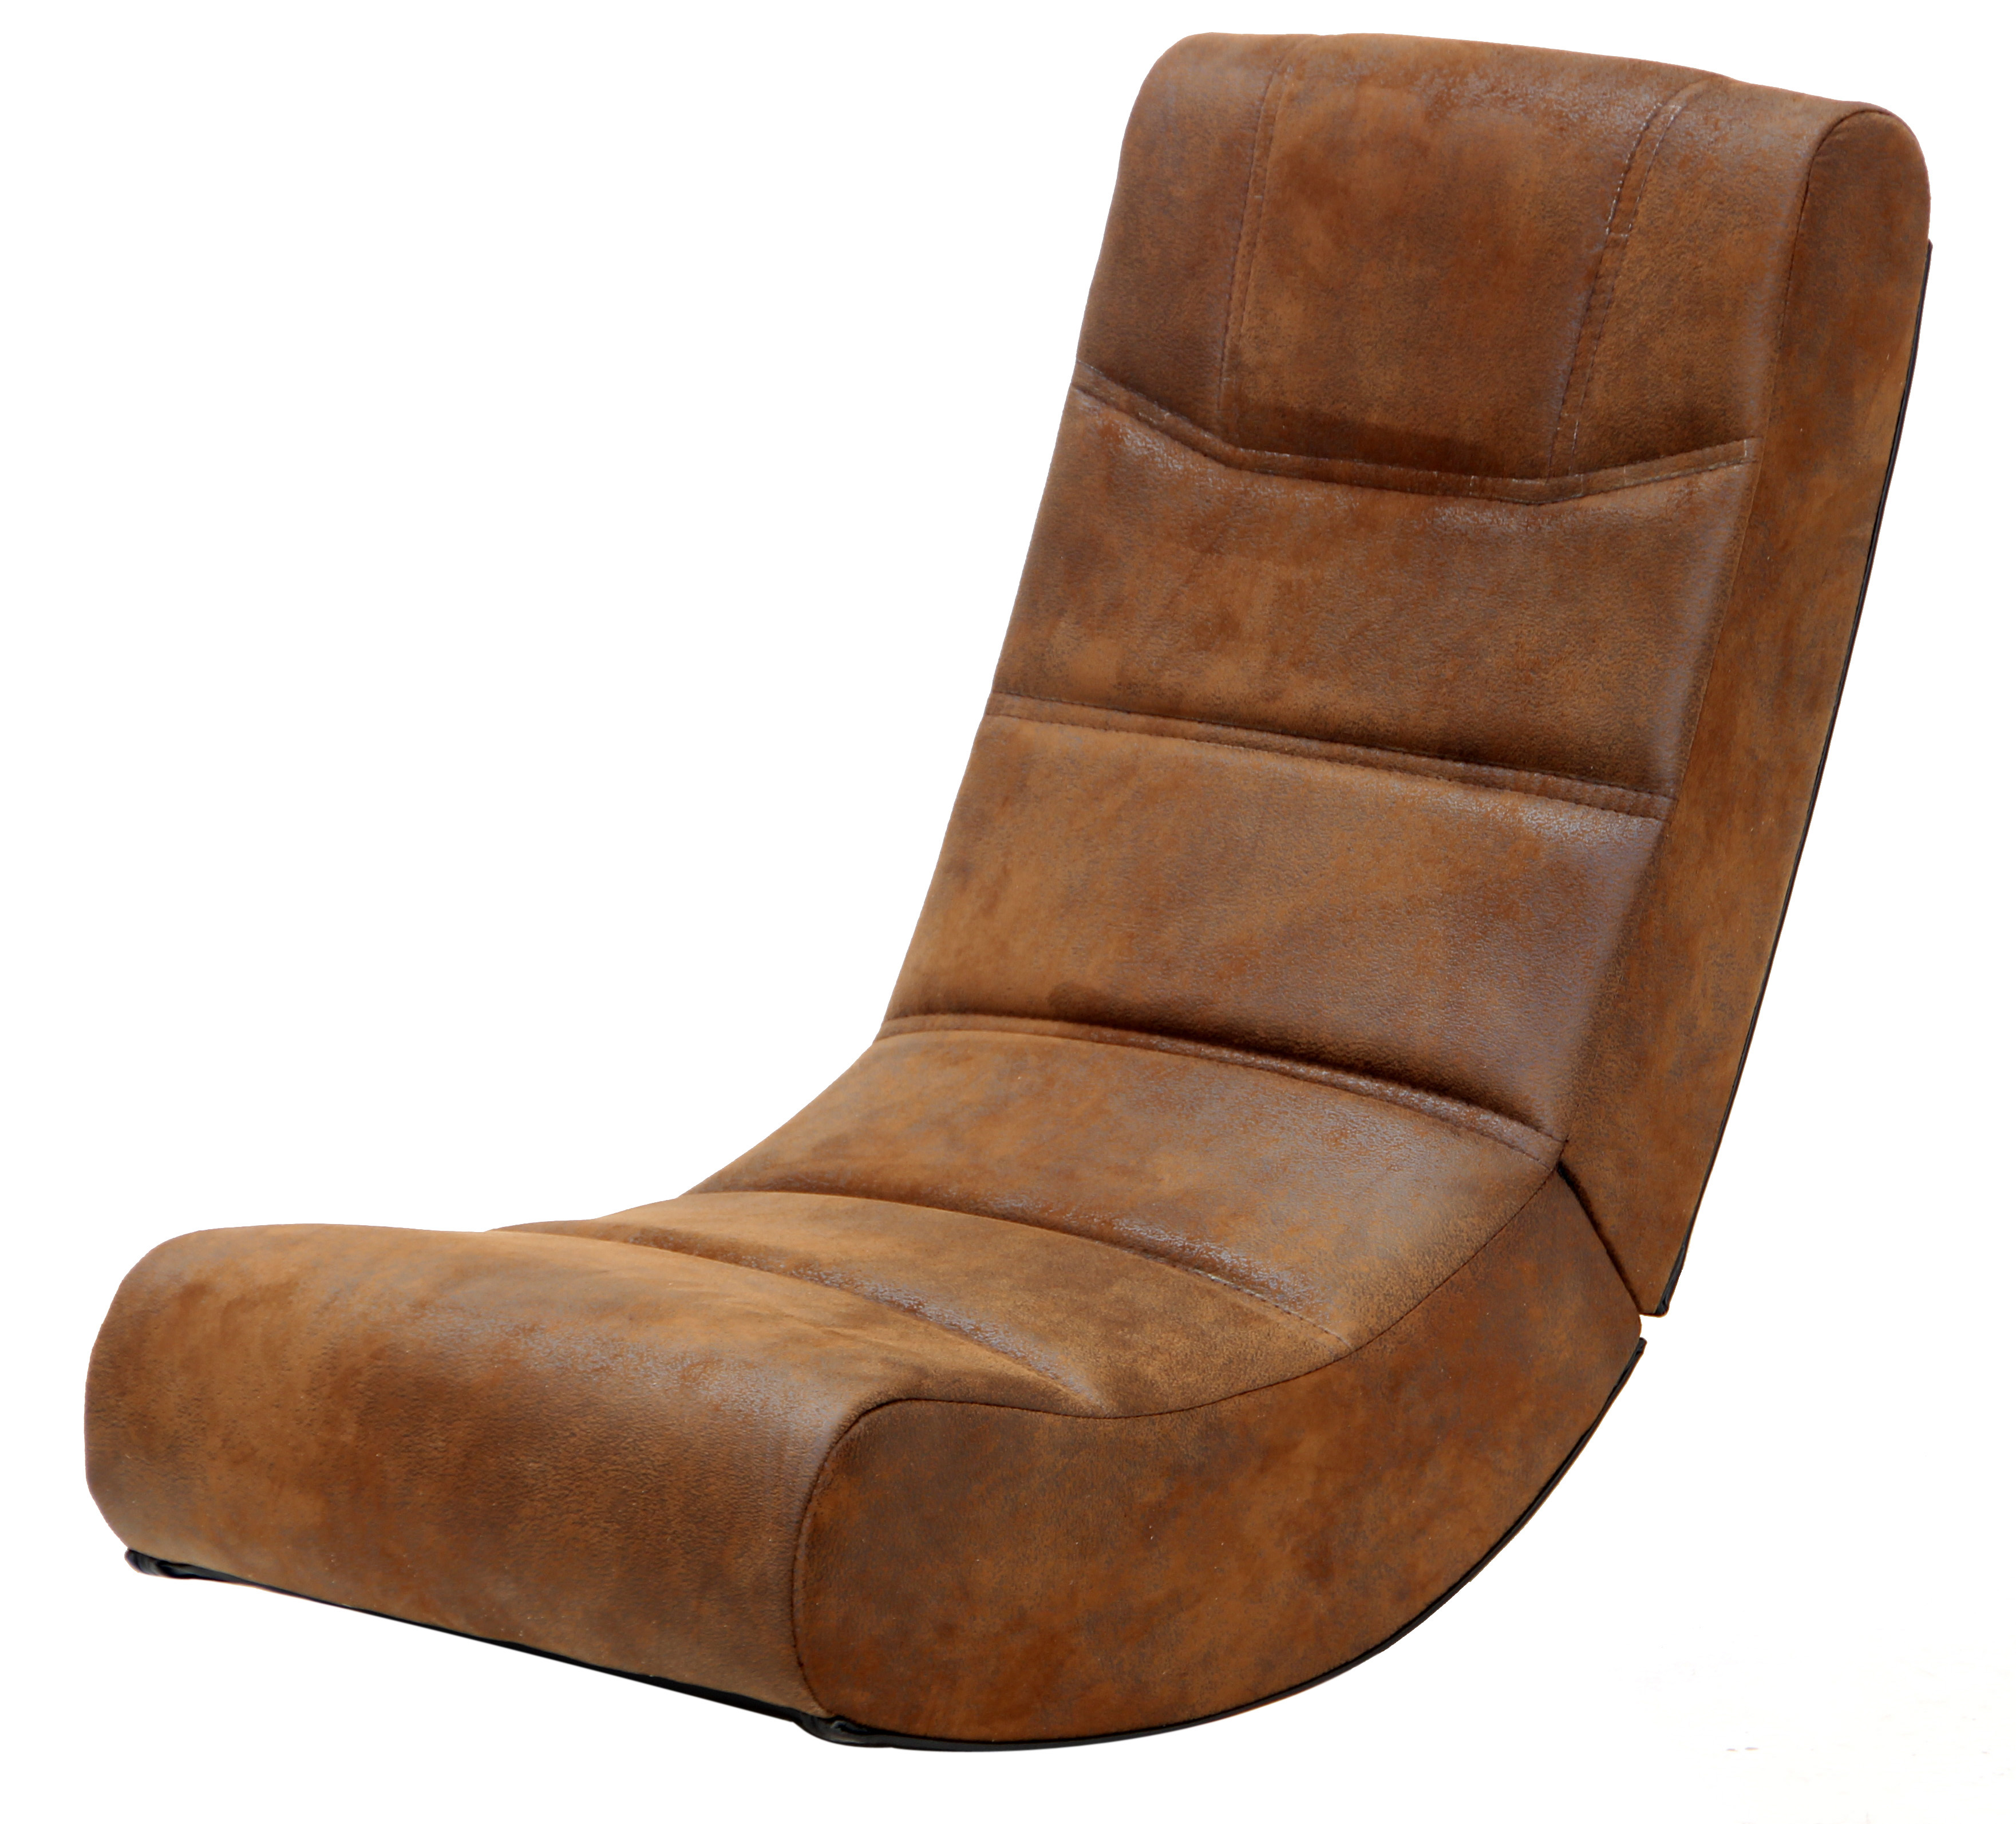 2.0 Audio X Rocker Gaming Chair in Distressed Brown Suede